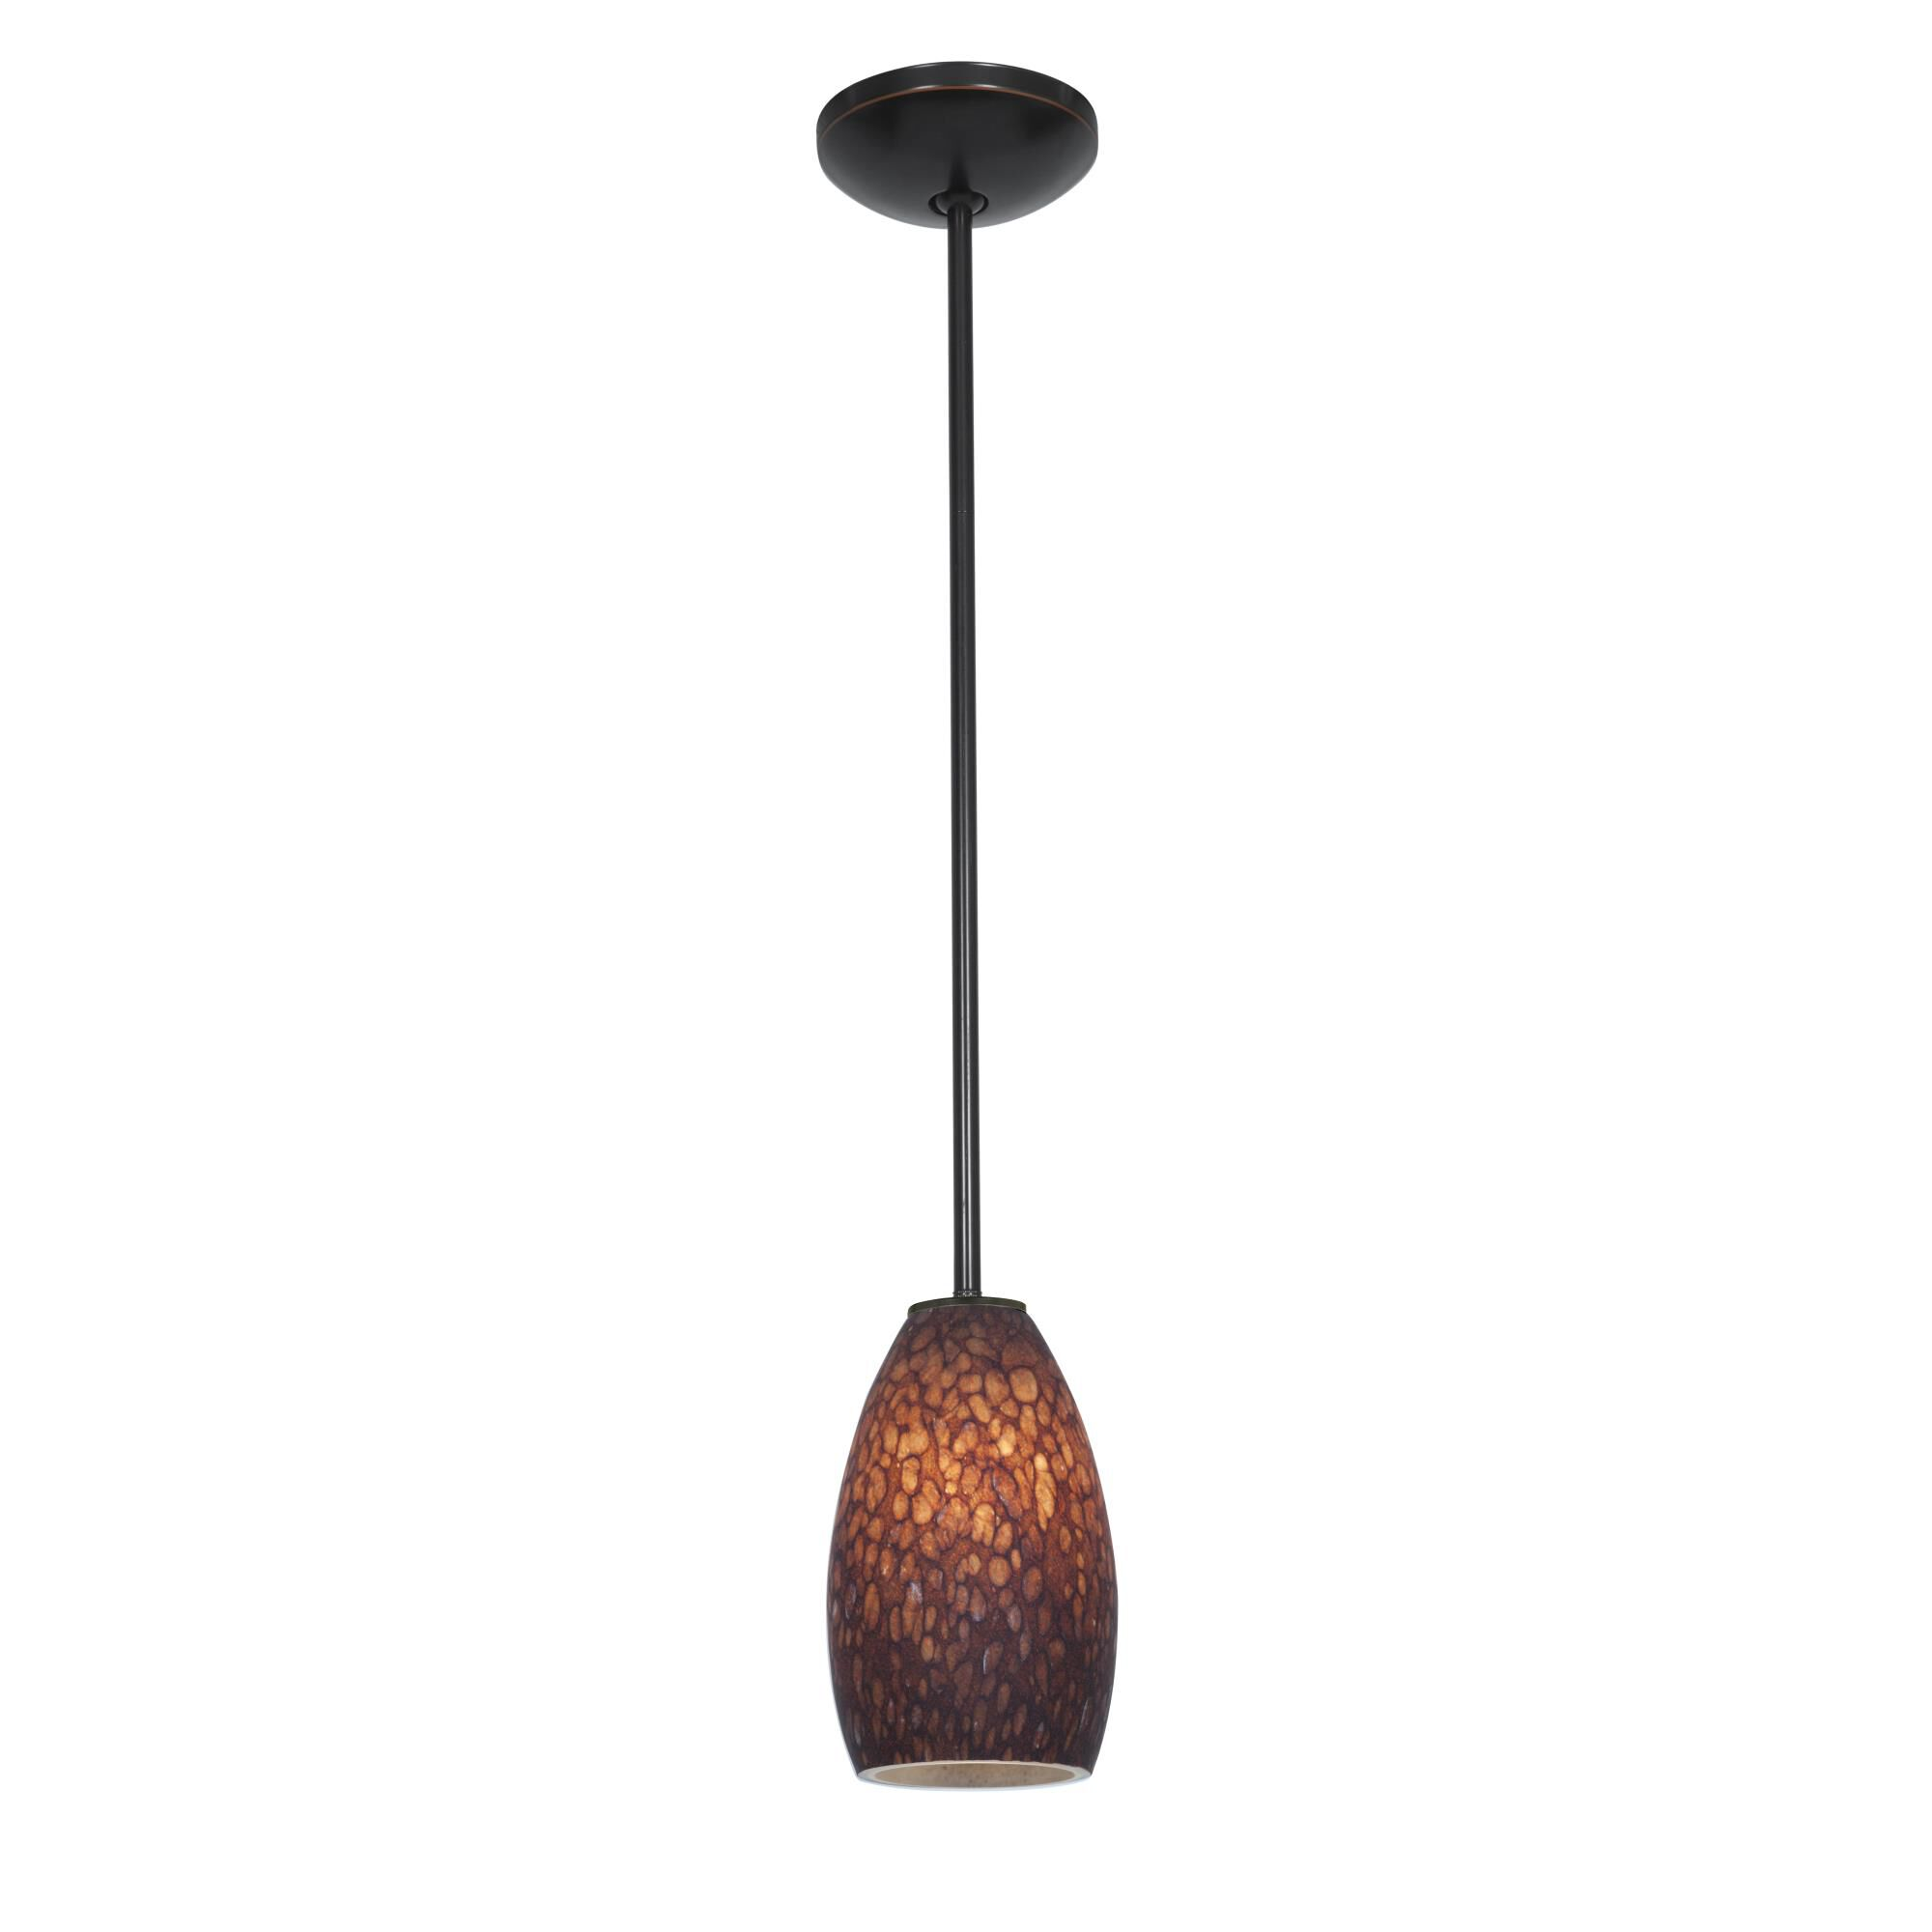 Access Lighting Champagne LED Mini Pendant Champagne 28012 3R ORBBRST Modern Contemporary